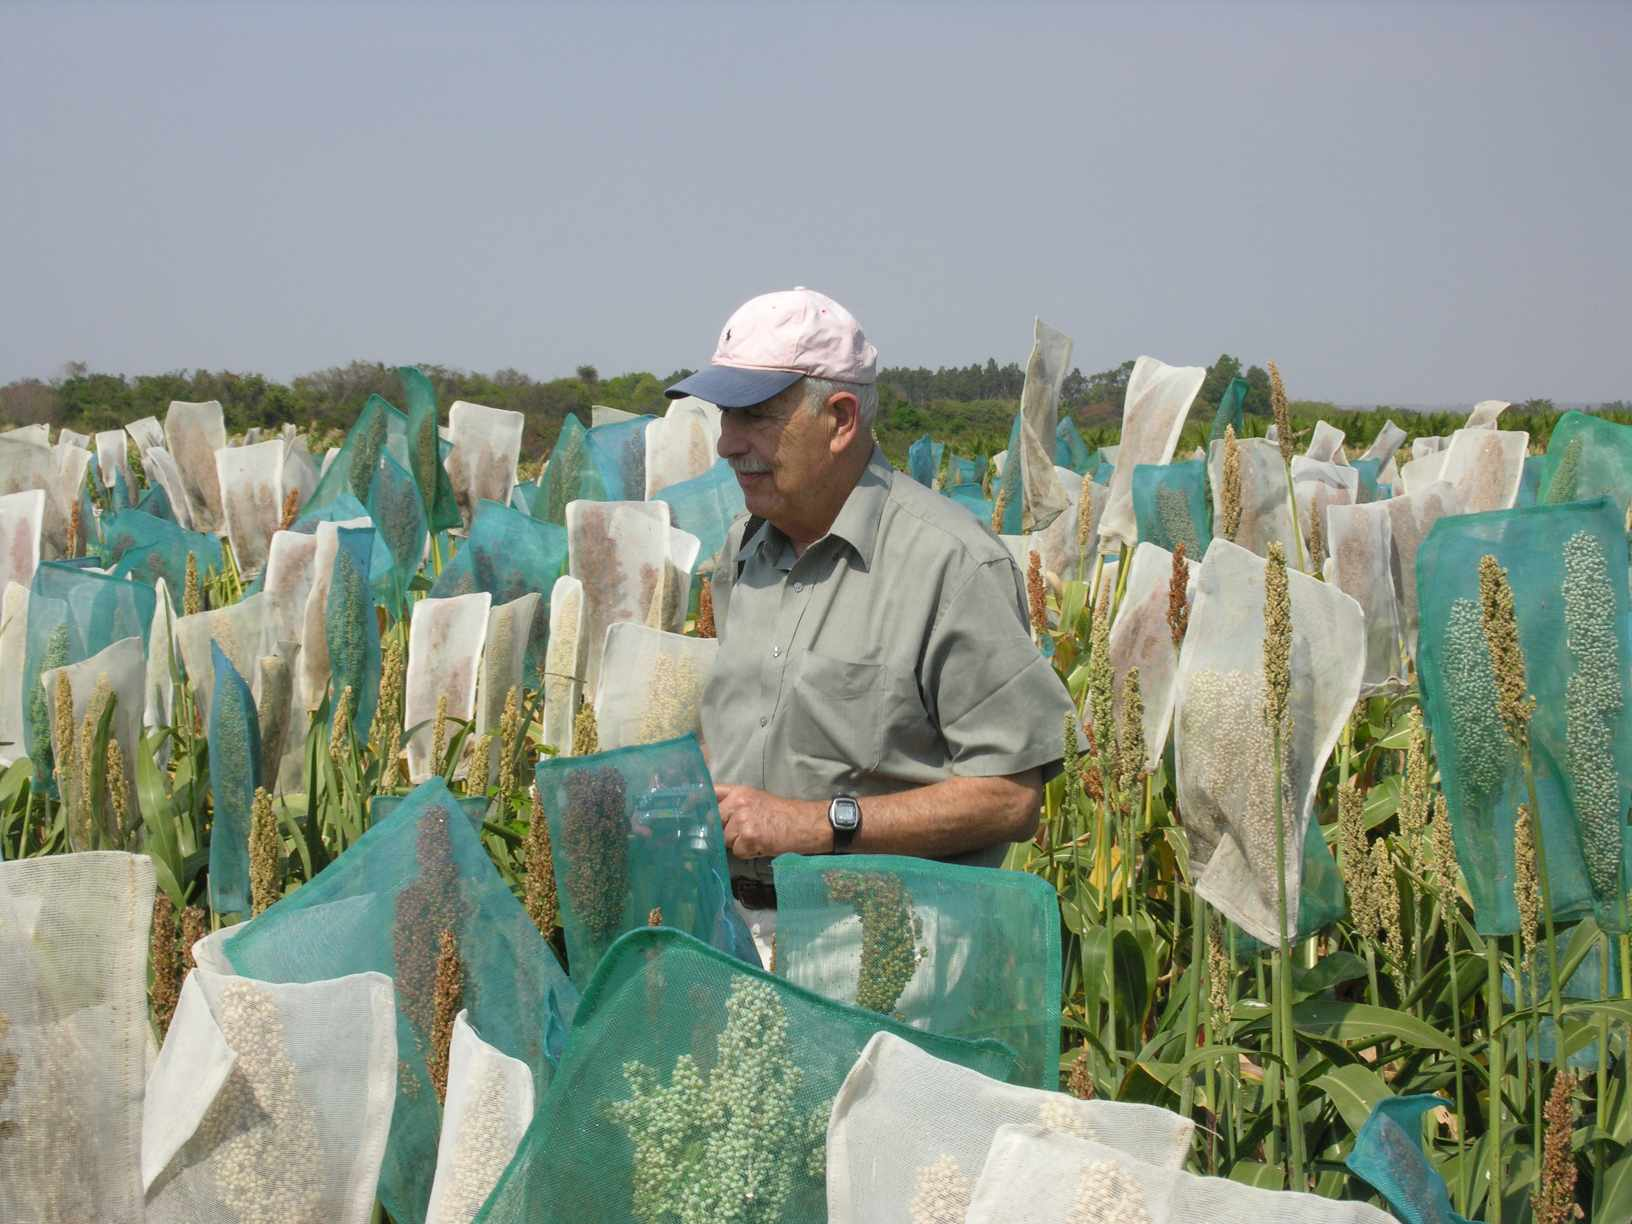 Plant physiologist Abraham Blum in the field. (Photo: Courtesy of the Journal of Experimental Botany)